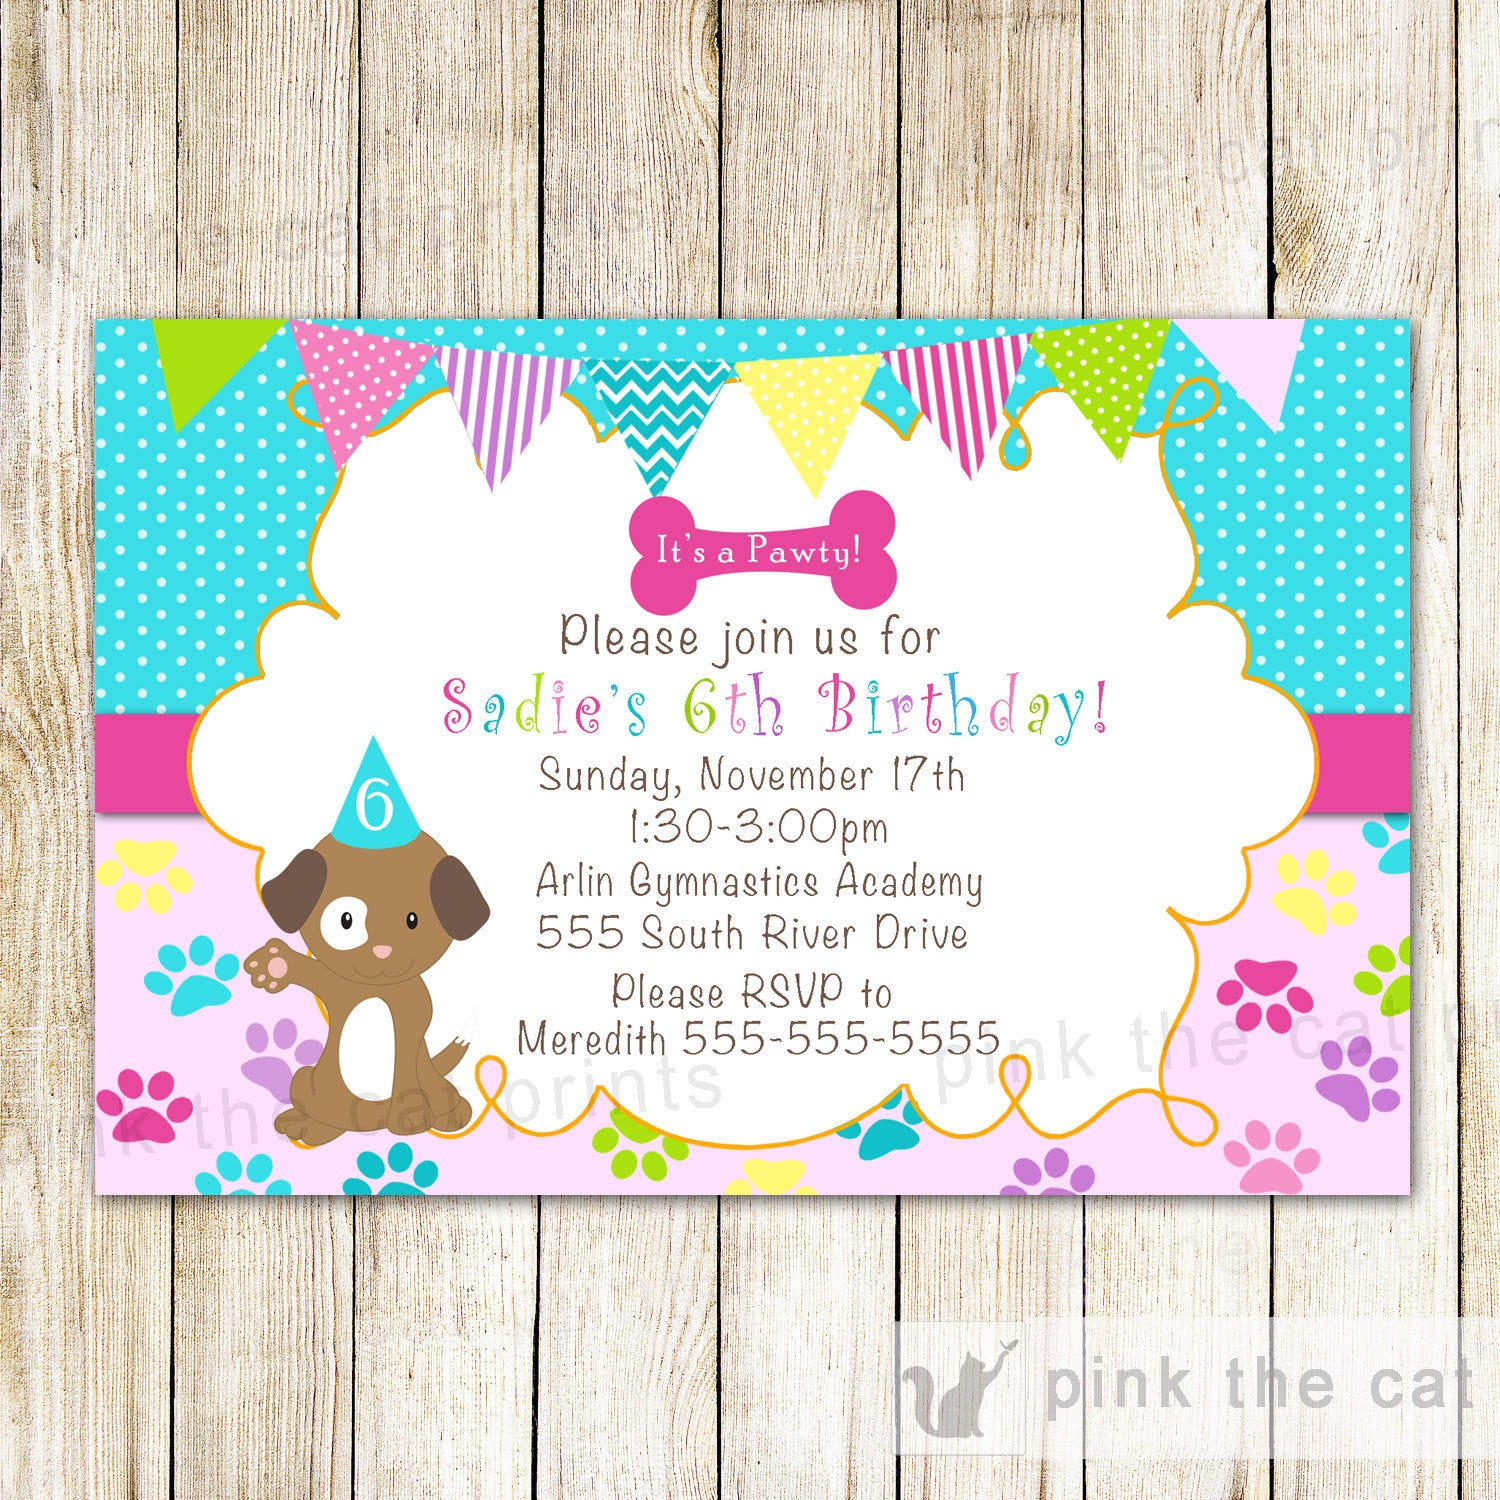 Puppy Girl Birthday Invitation Pawty Pink Turquoise – Pink The Cat